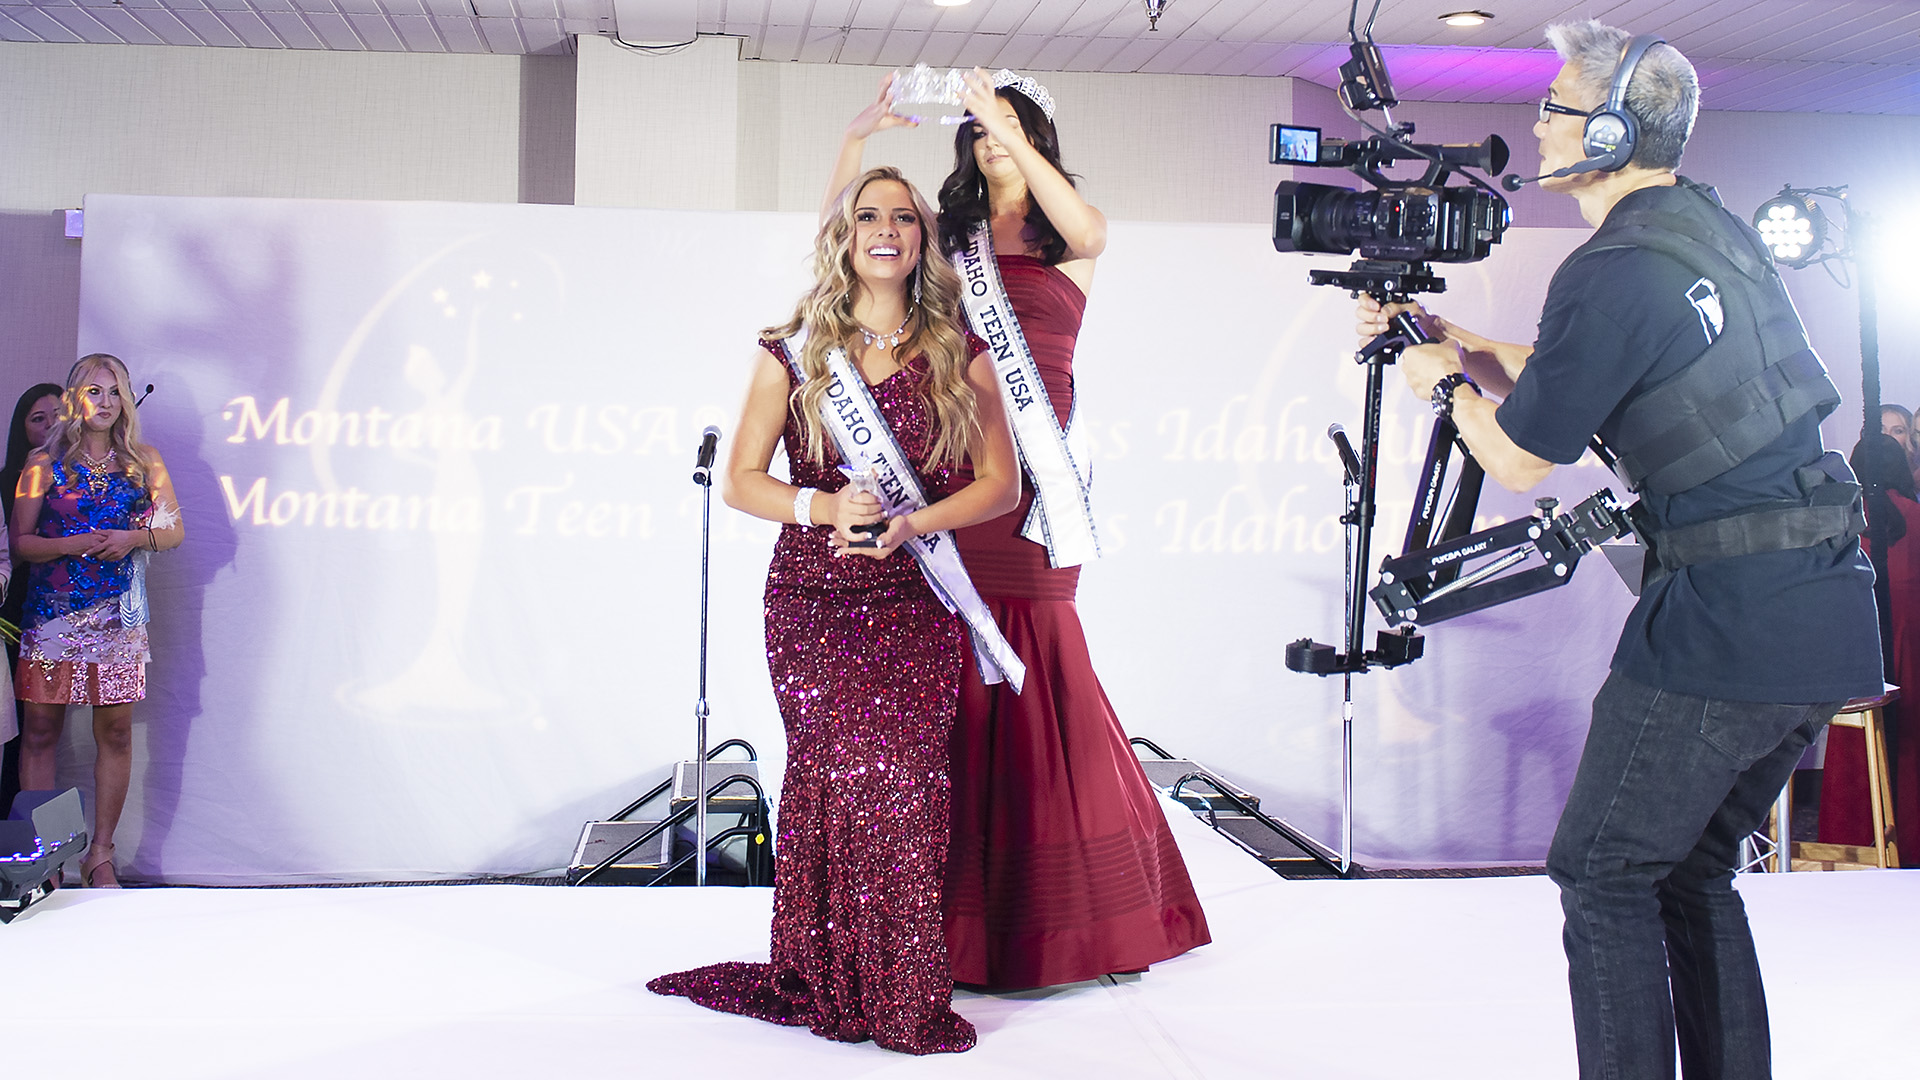 Kallie Peck named Miss Idaho Teen USA 2021!